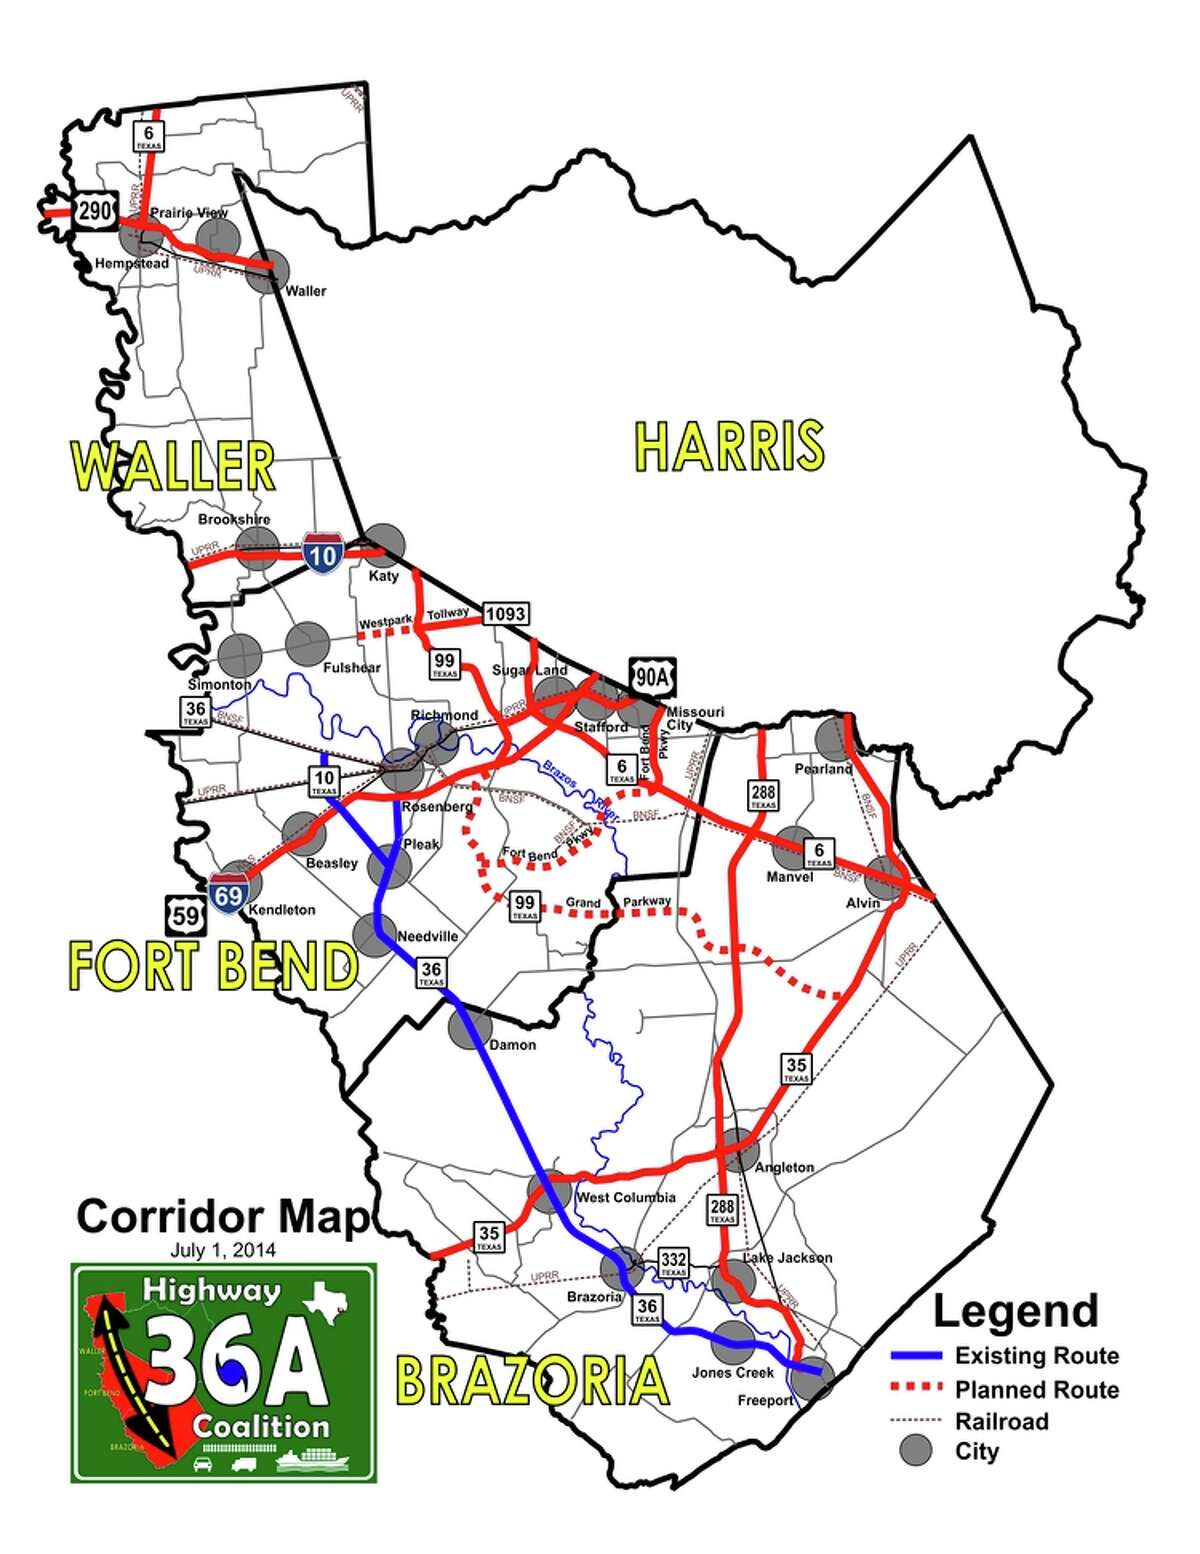 The Highway 36A Coalition promotes public and private investment in a regional corridor originating in and around the Freeport area through southern Brazoria, western Fort Bend and Waller counties connecting to Texas 6 north of Hempstead.